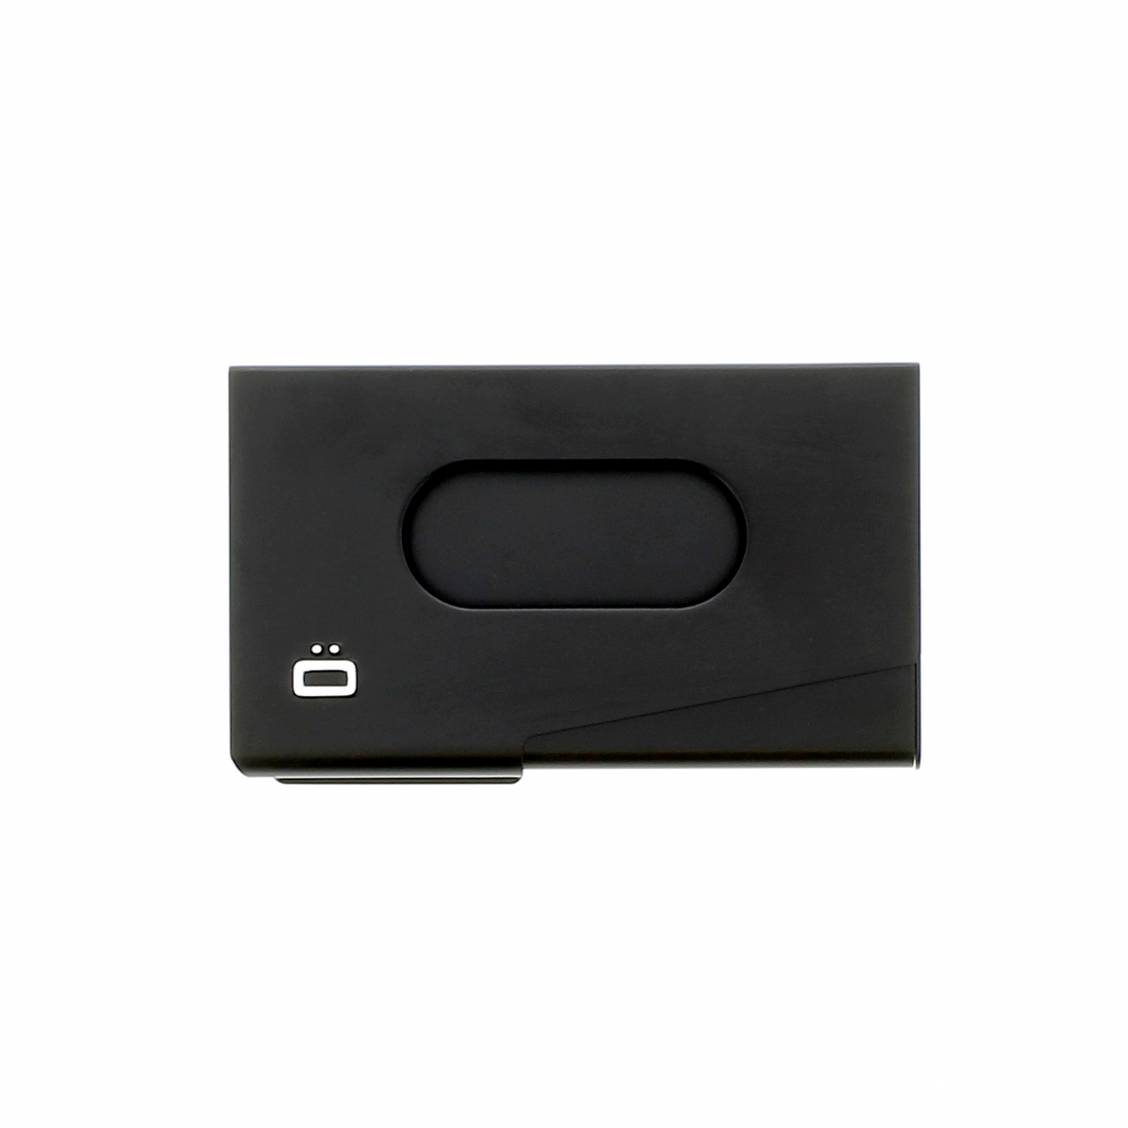 Porte-cartes Ogon One touch noir